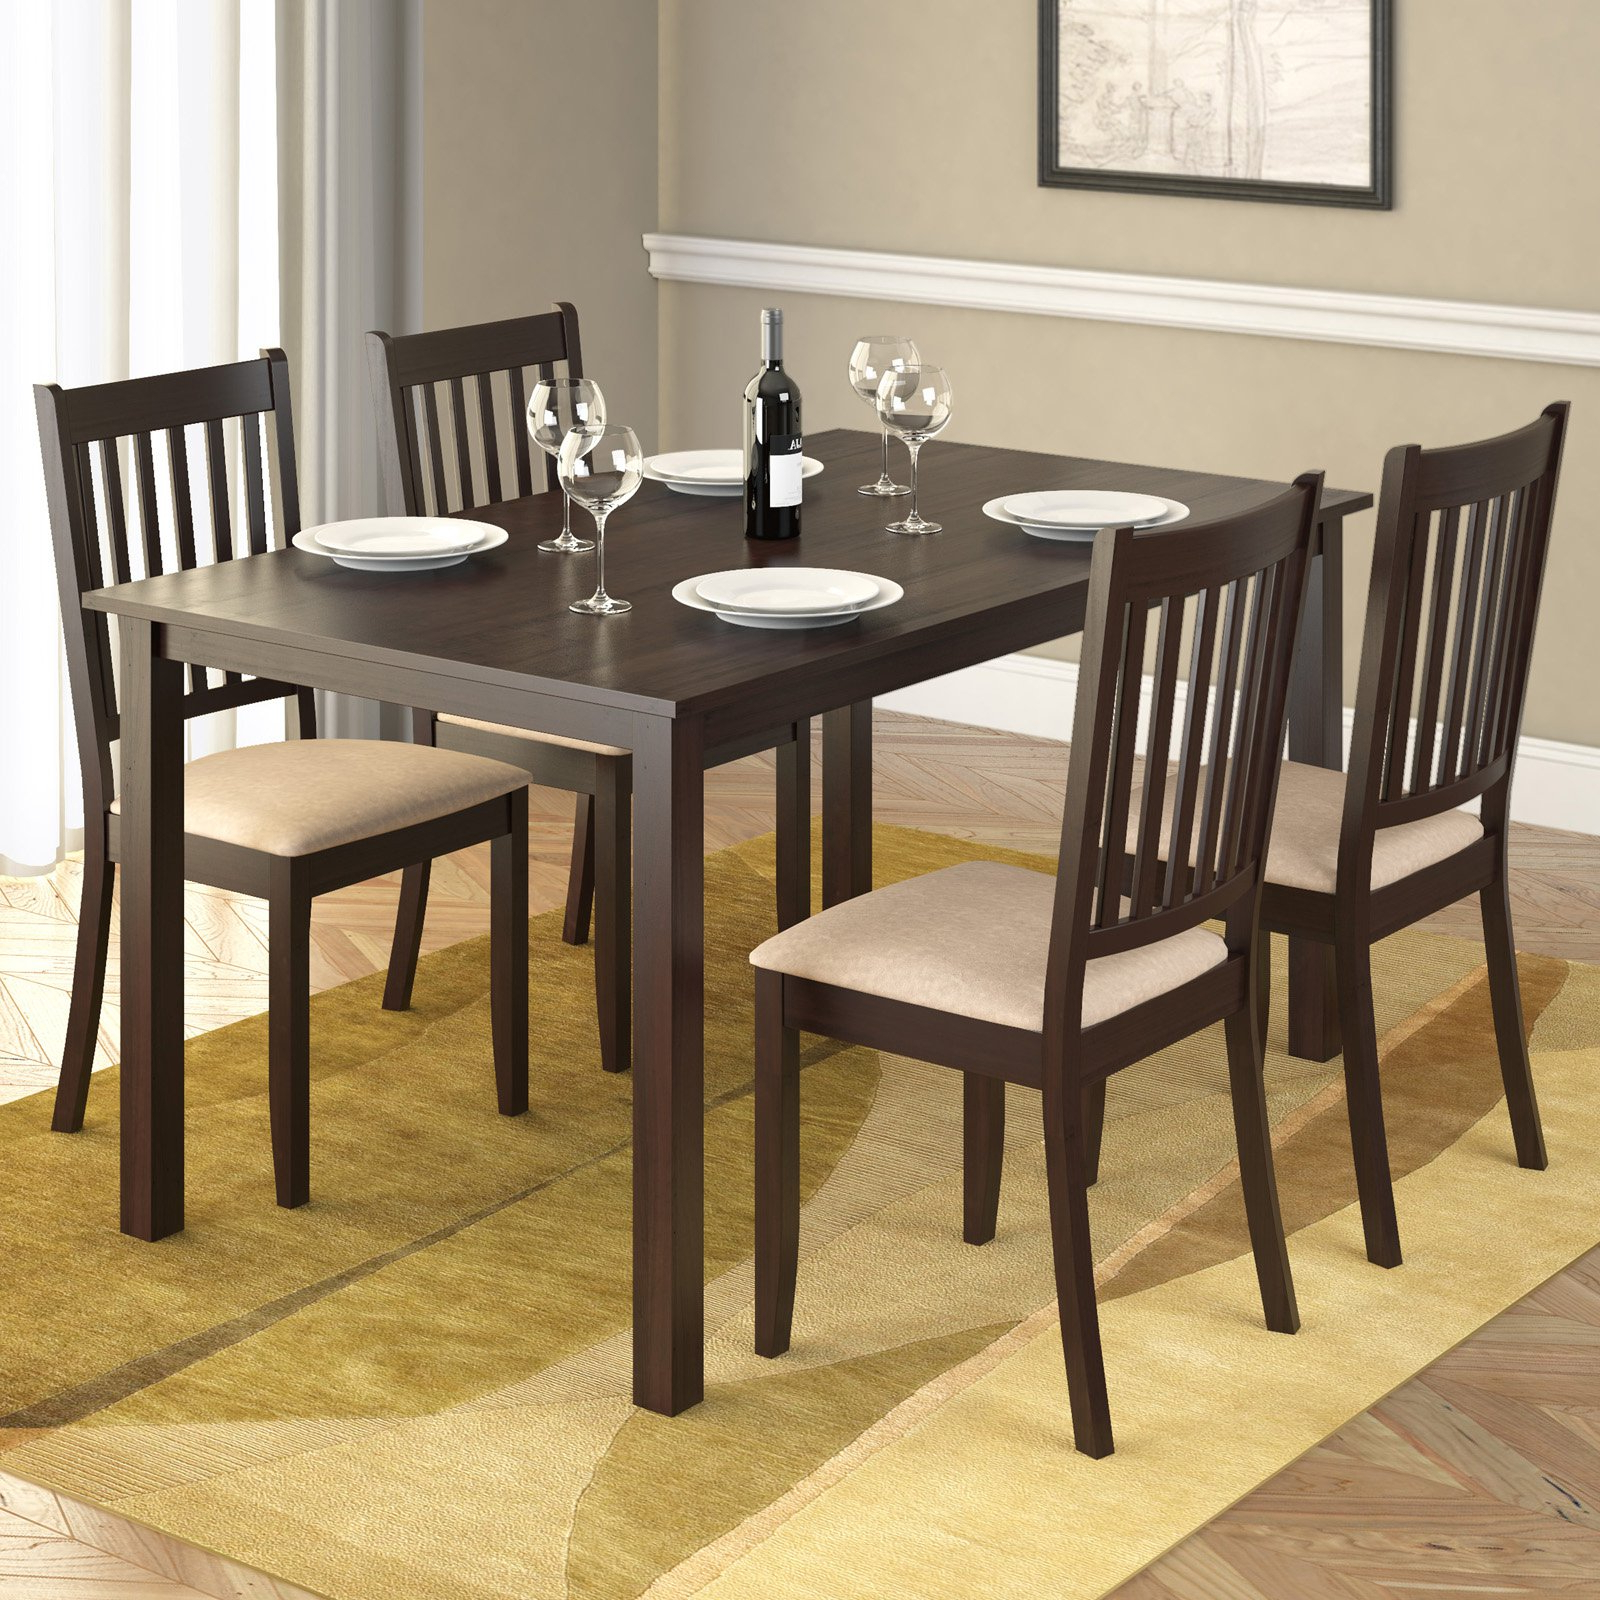 Corliving Atwood 5 Piece Dining Table Set With Beige Microfiber Within Best And Newest Rani 4 Door Sideboards (View 13 of 20)